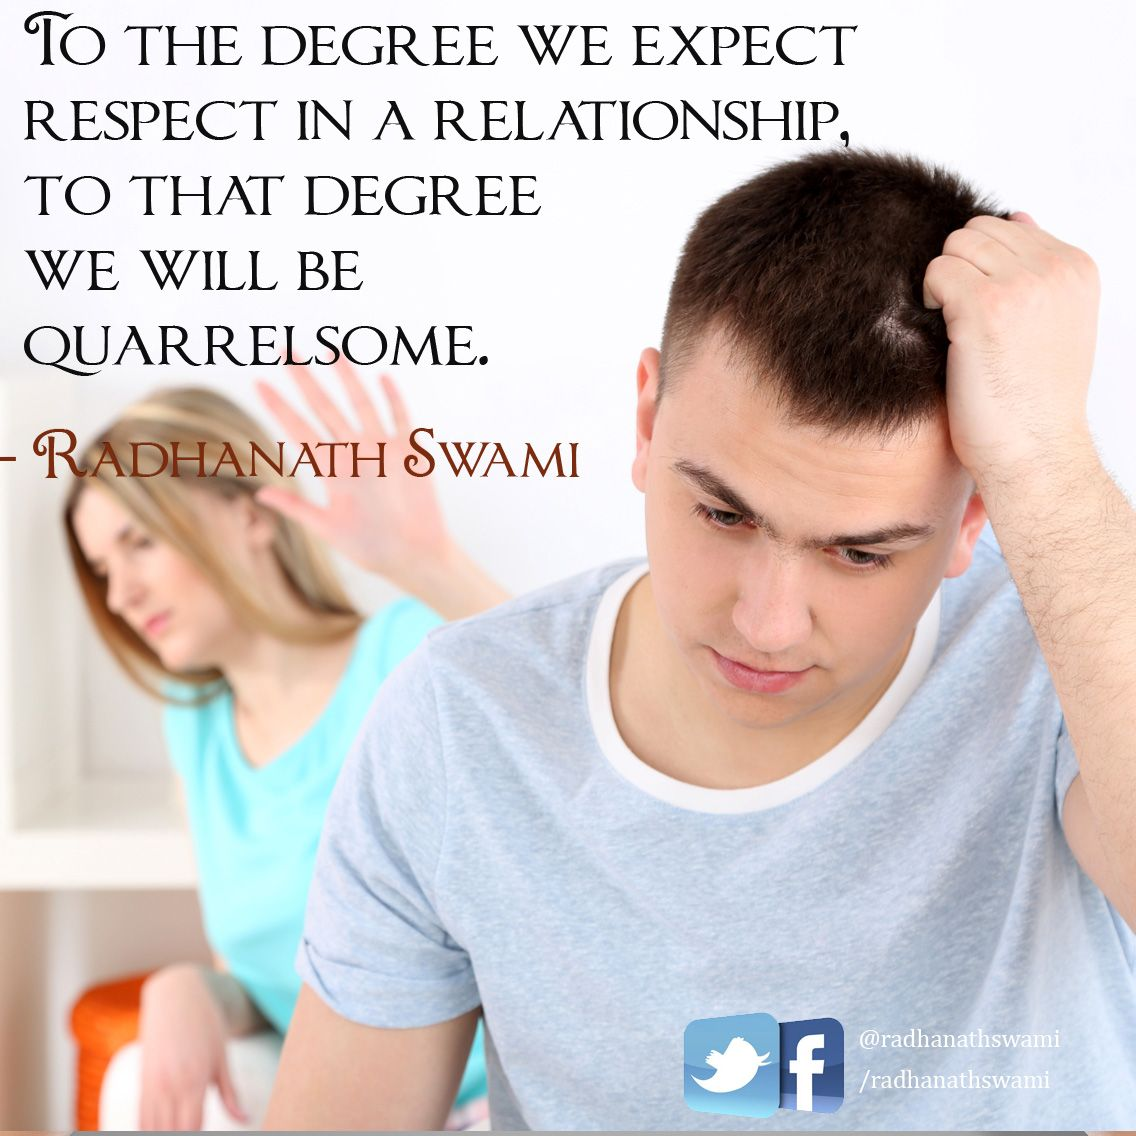 To The Degree We Expect Respect In A Relationship, To That